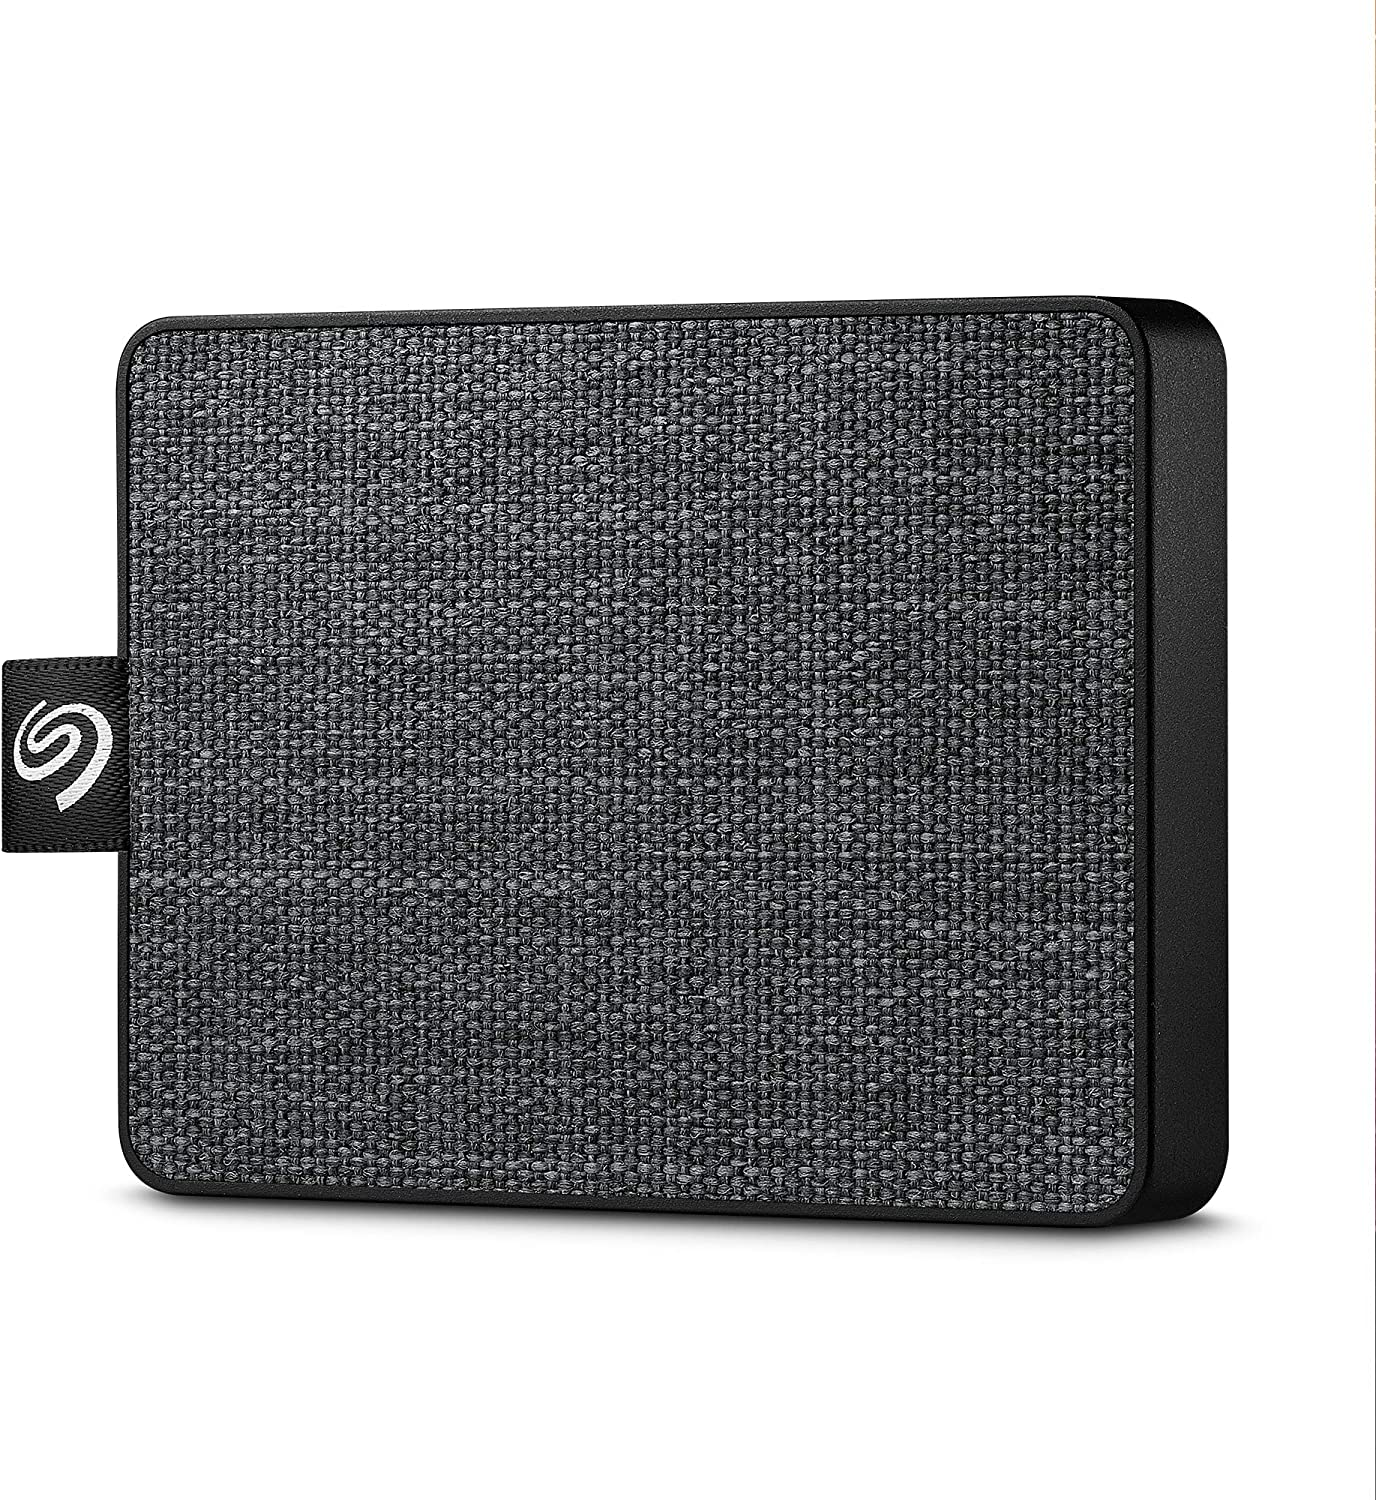 Seagate One Touch SSD 500GB External Solid State Drive Portable – Black, USB 3.0 for PC Laptop and Mac, 1yr Mylio Create, 2 months Adobe CC Photography (STJE500400)